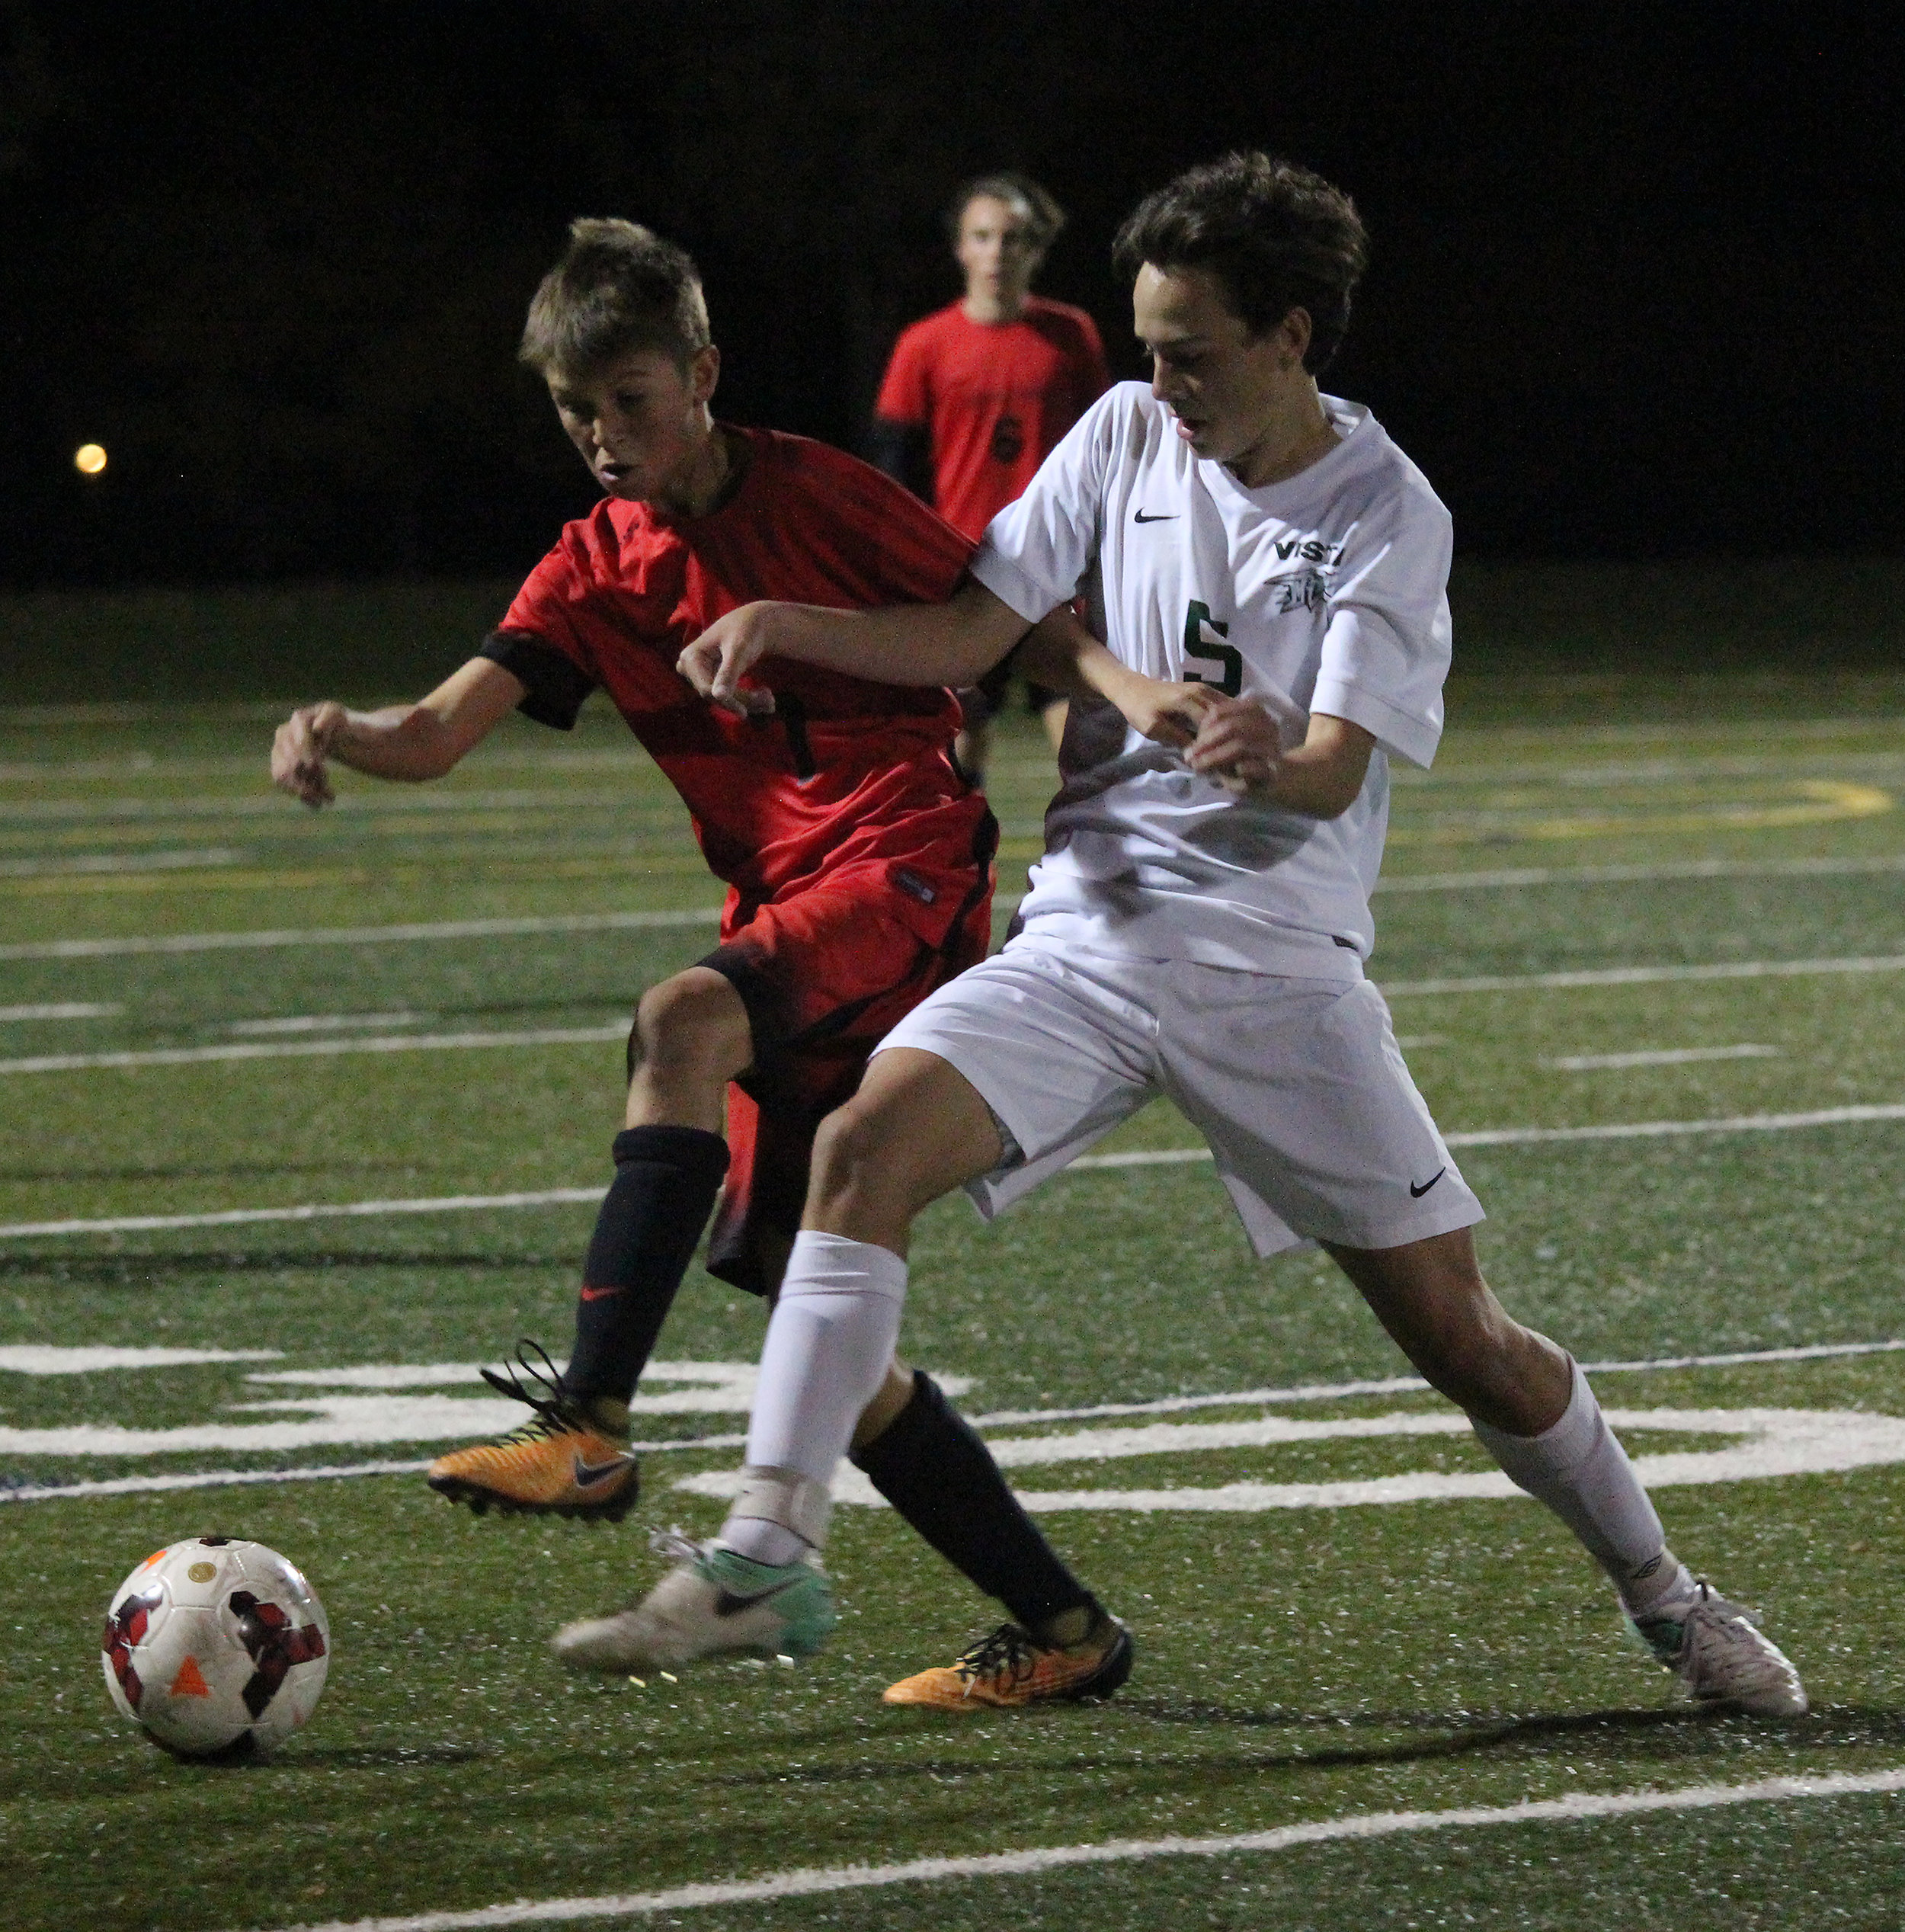 Sophomore Dante Amicarella battles for the ball against a Castle View player in the last home game of the season.